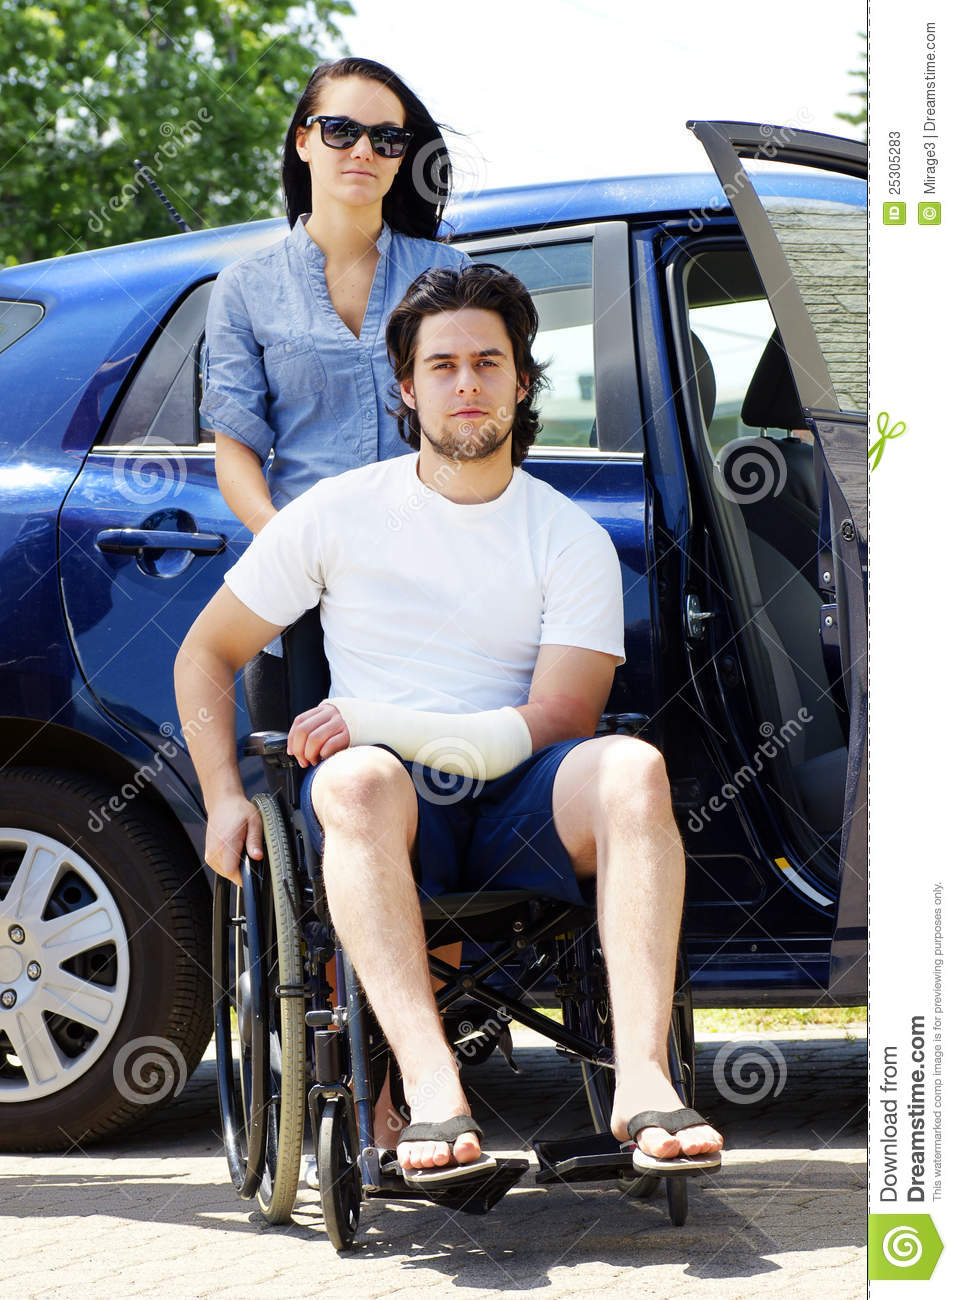 Car Accident Insurance >> Young Couple With Man In Wheelchair Stock Image - Image: 25305283